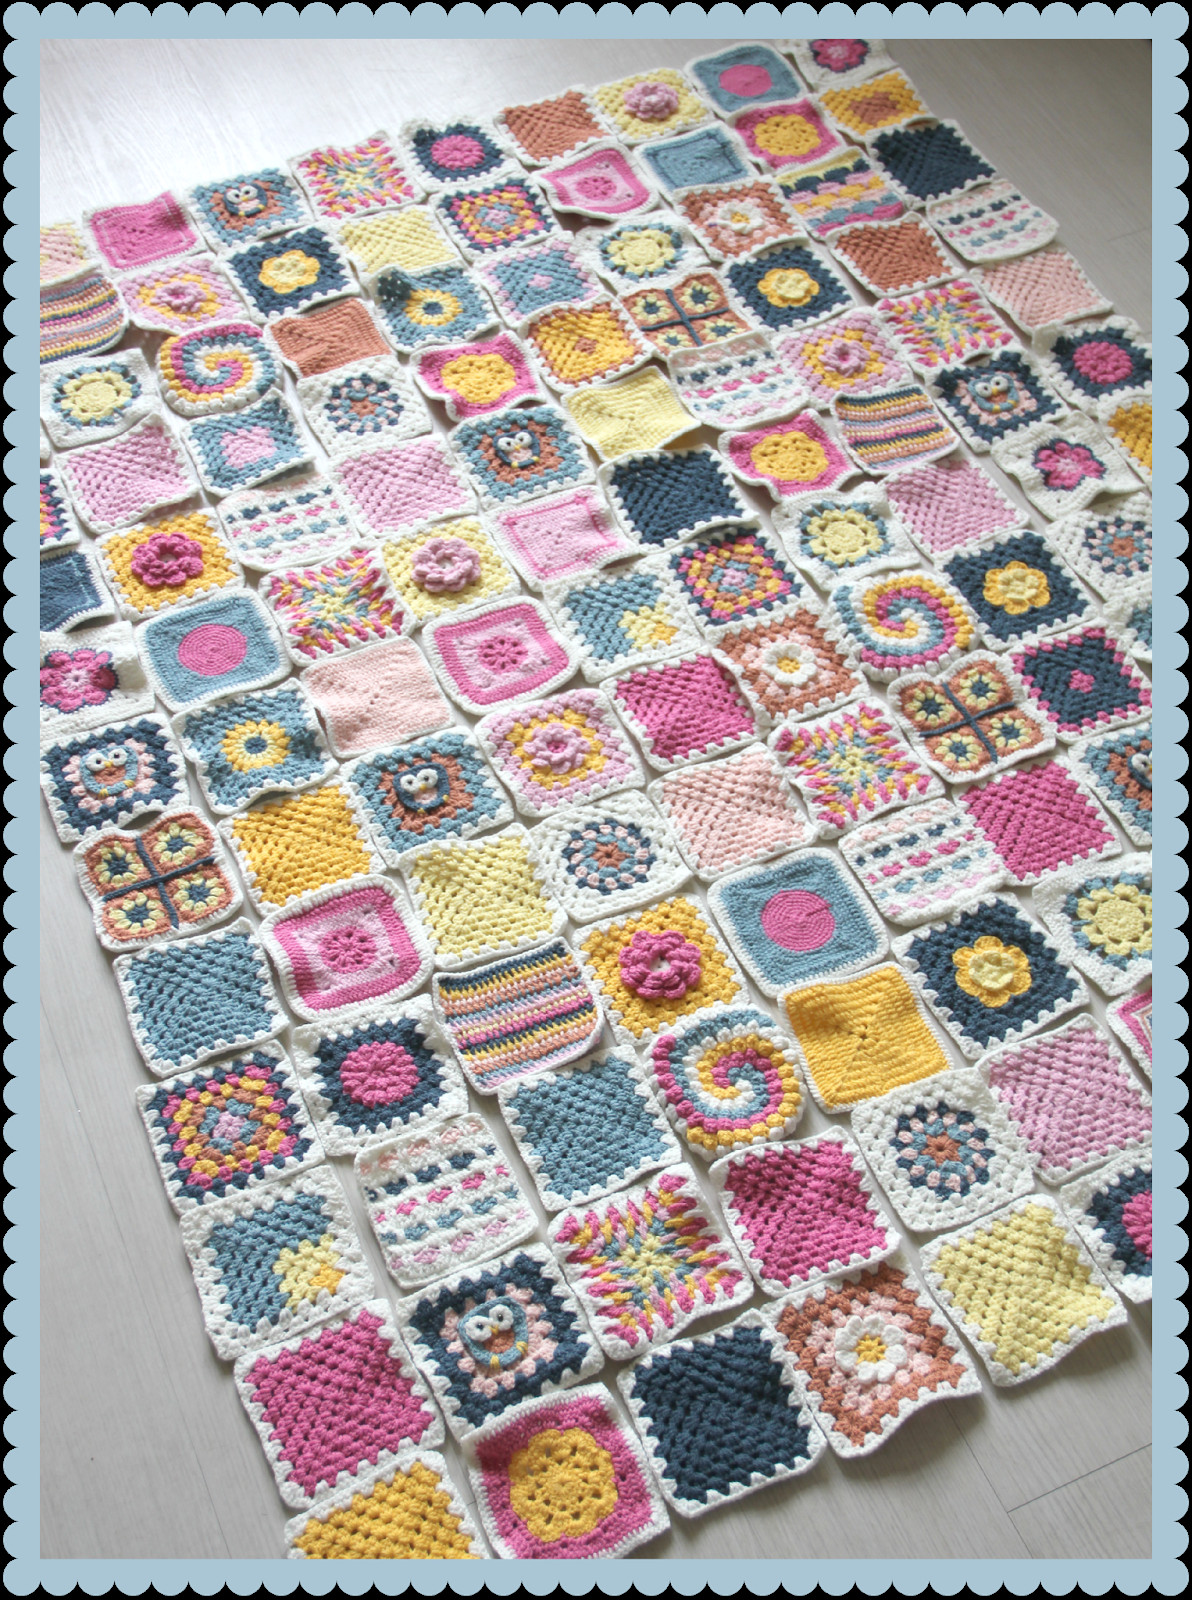 Free Granny Square Patterns Awesome the Heartfelt Pany Granny Square Challenge assembling Of Incredible 49 Pictures Free Granny Square Patterns